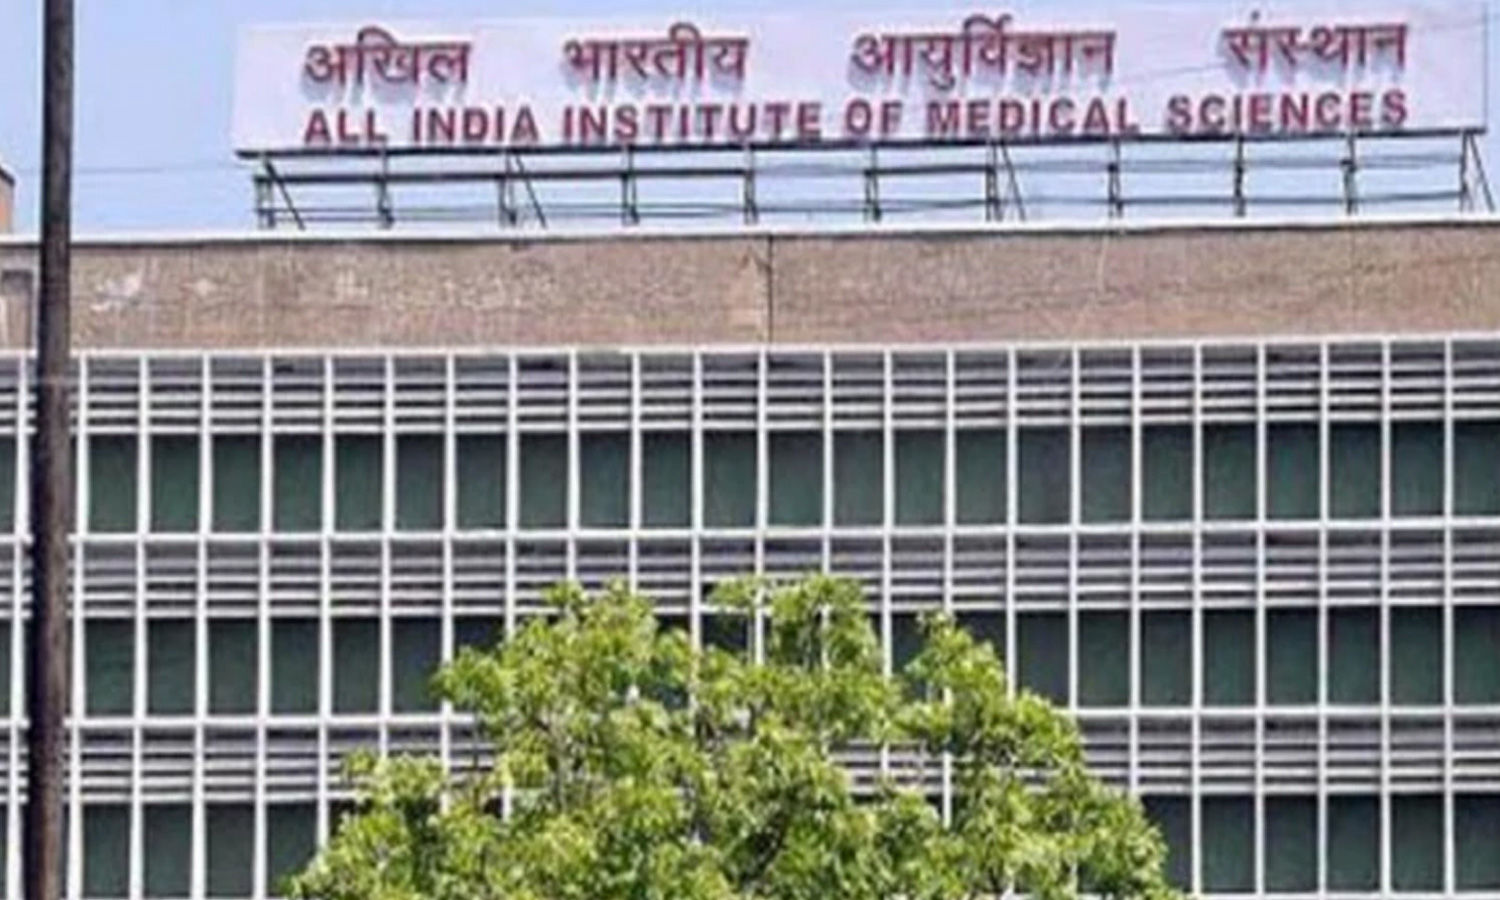 AIIMS sets up task force to develop COVID-19 management protocol